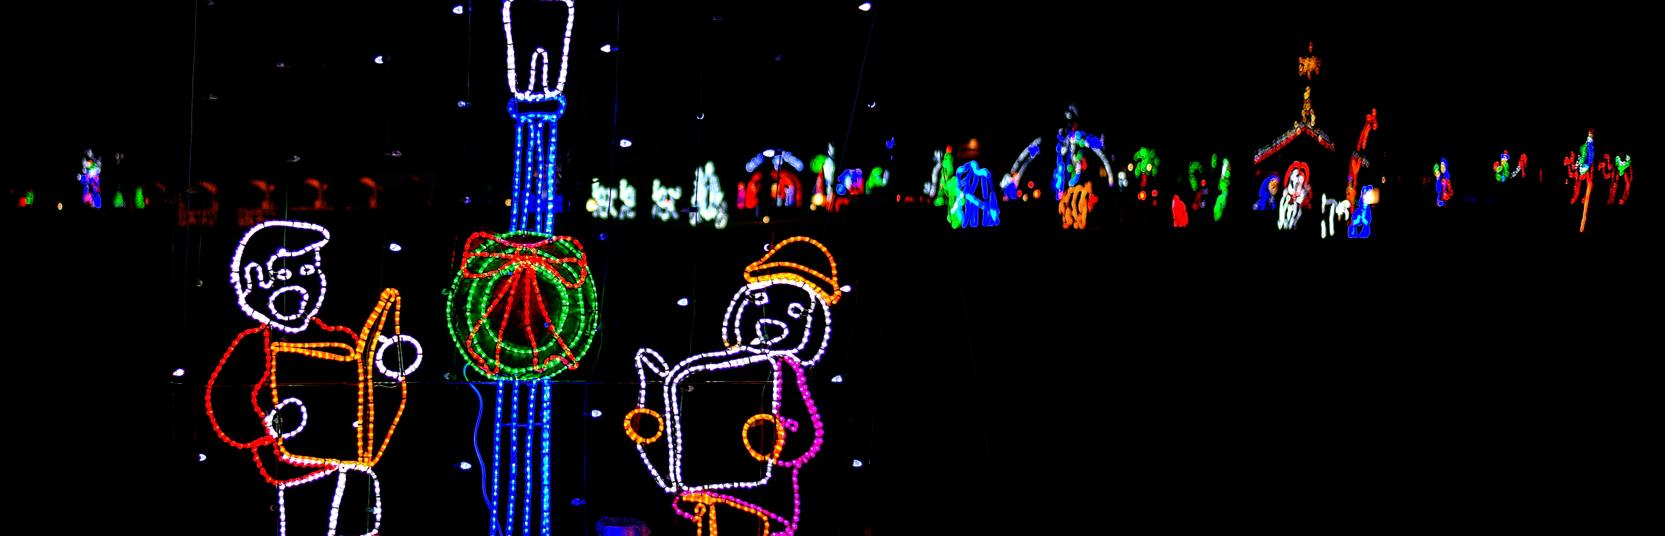 Tips And Tricks To The Fantasy Of Lights Celebrate In Fort